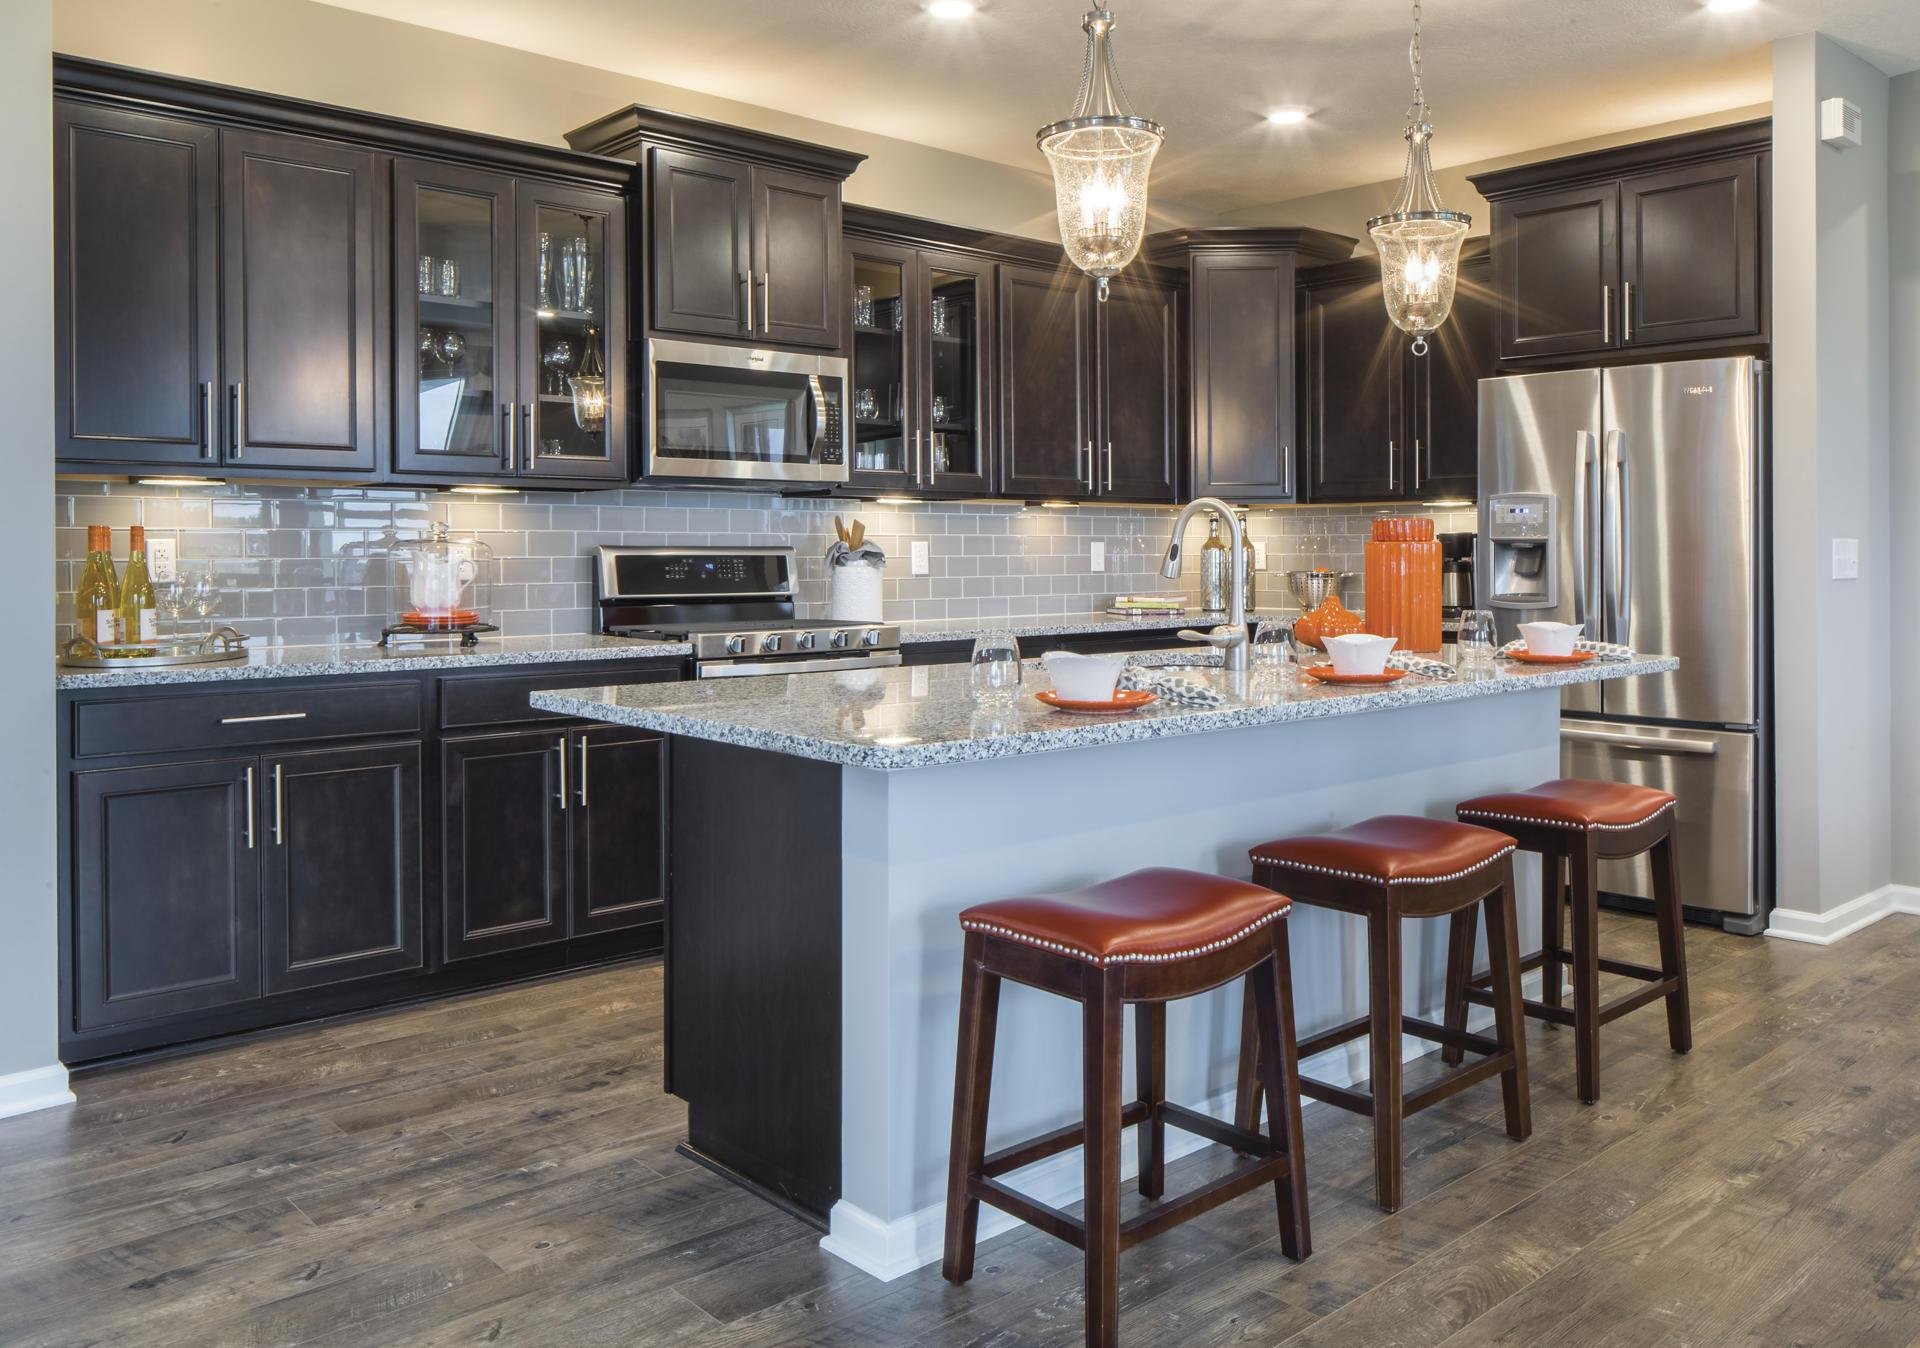 Kitchen featured in the Belleville By Drees Homes in Indianapolis, IN